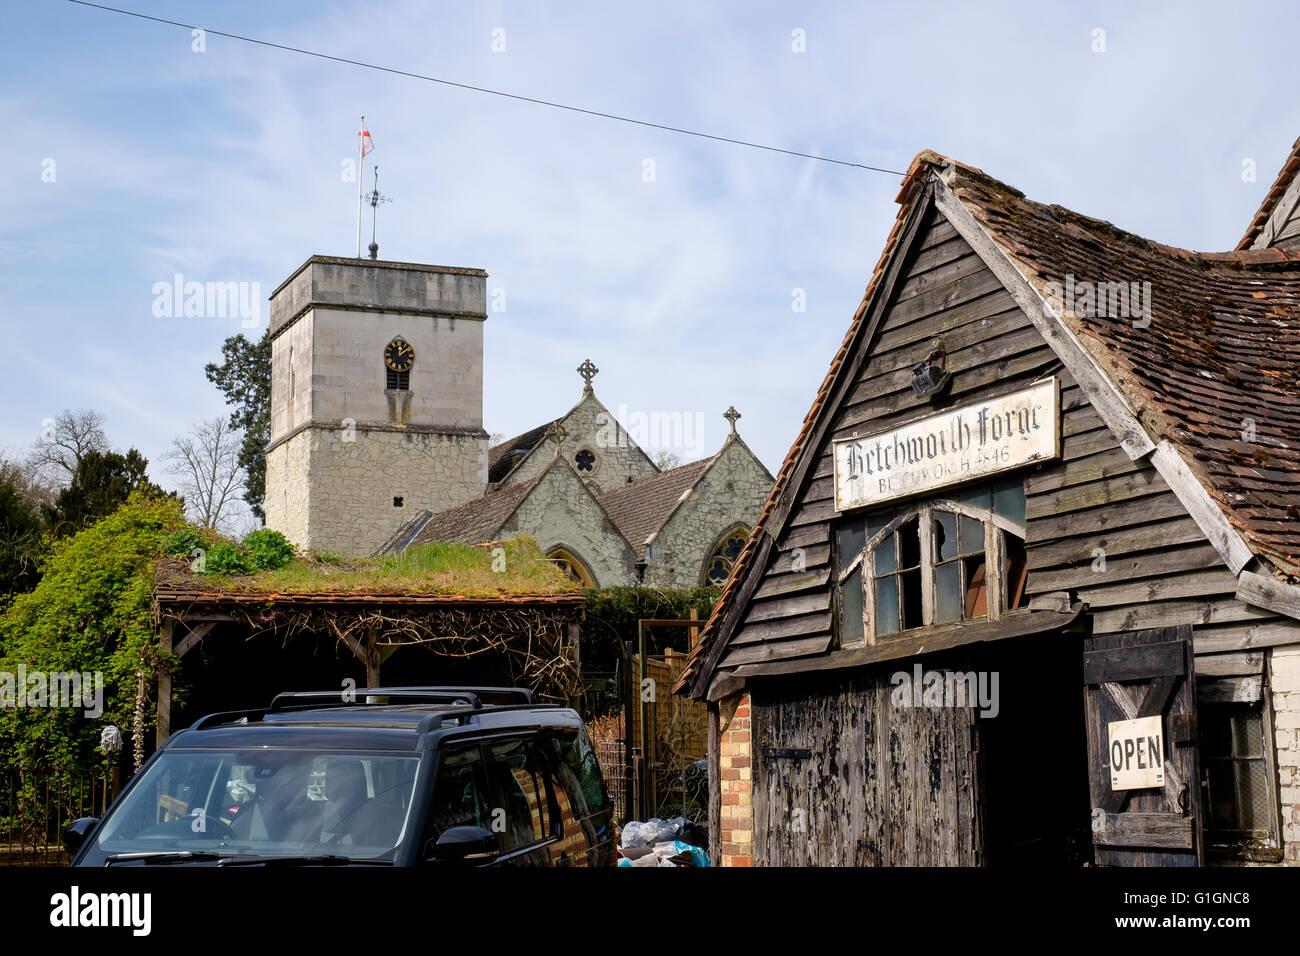 The village church and forge in Betchworth, just outside Dorking, Surrey - Stock Image